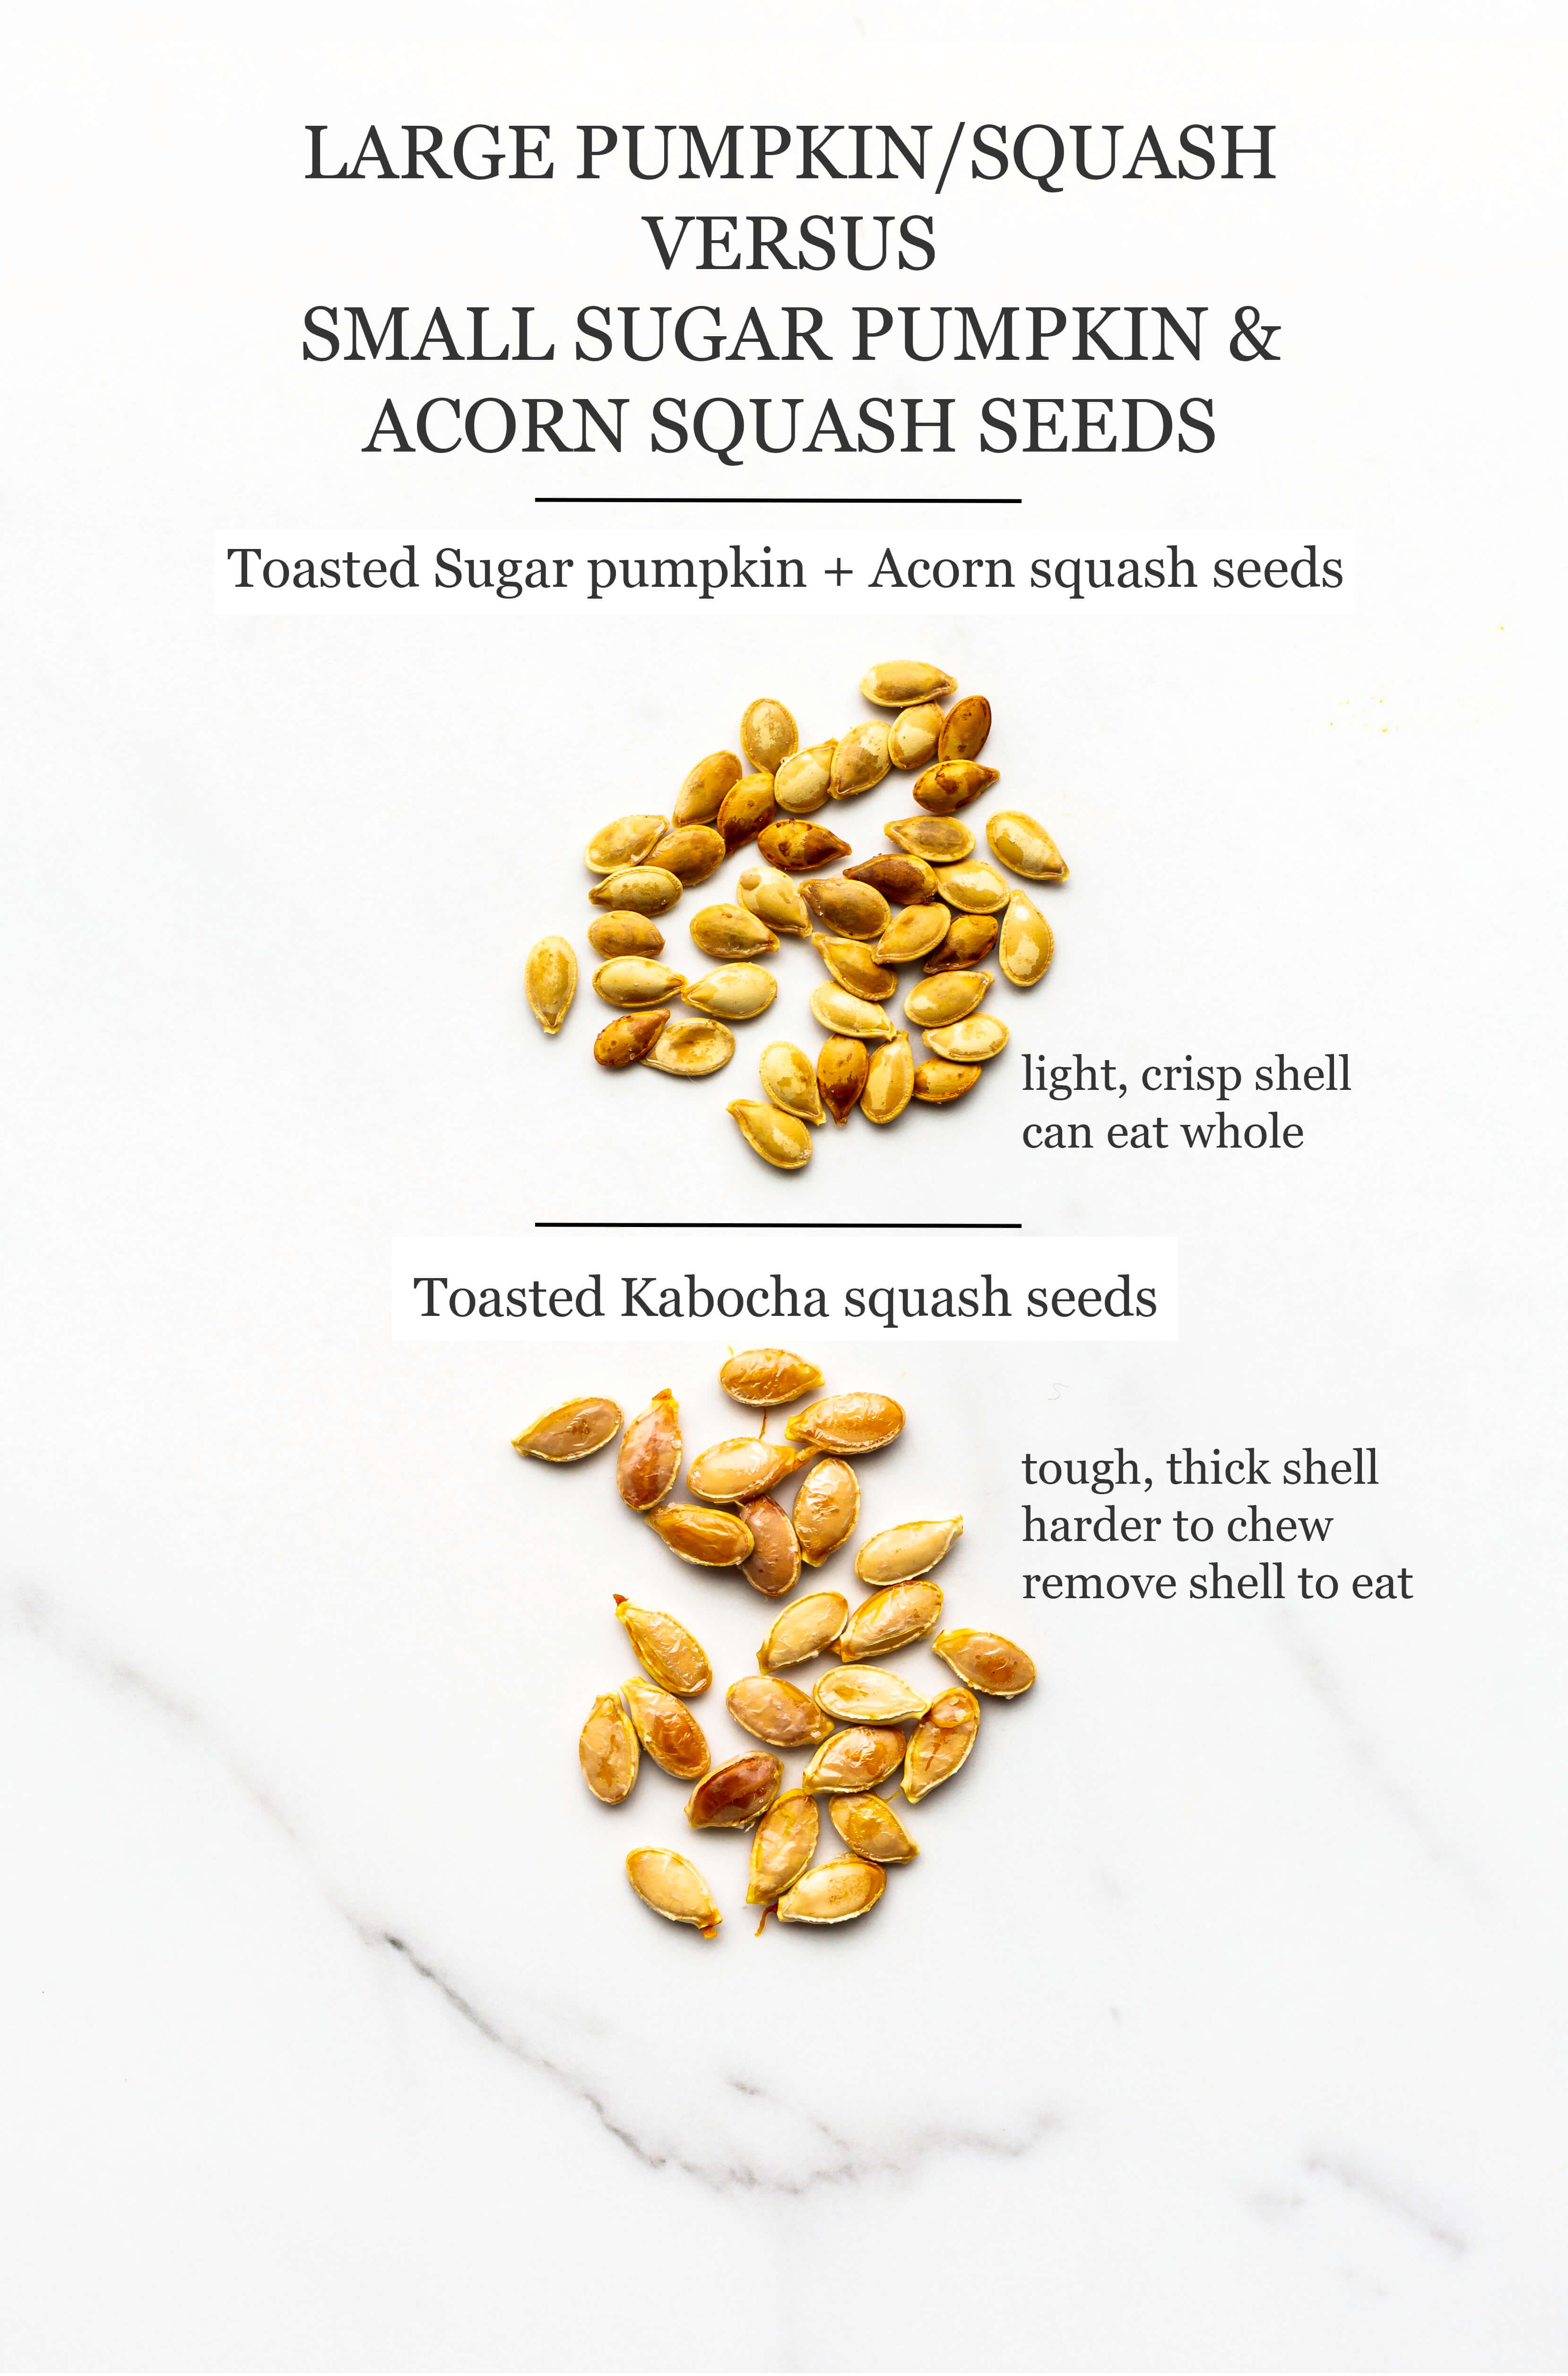 Toasted kabocha seeds compared to toasted acorn squash and Sugar pumpkin seeds to show that Kabocha and big pumpkins yield bigger seeds.